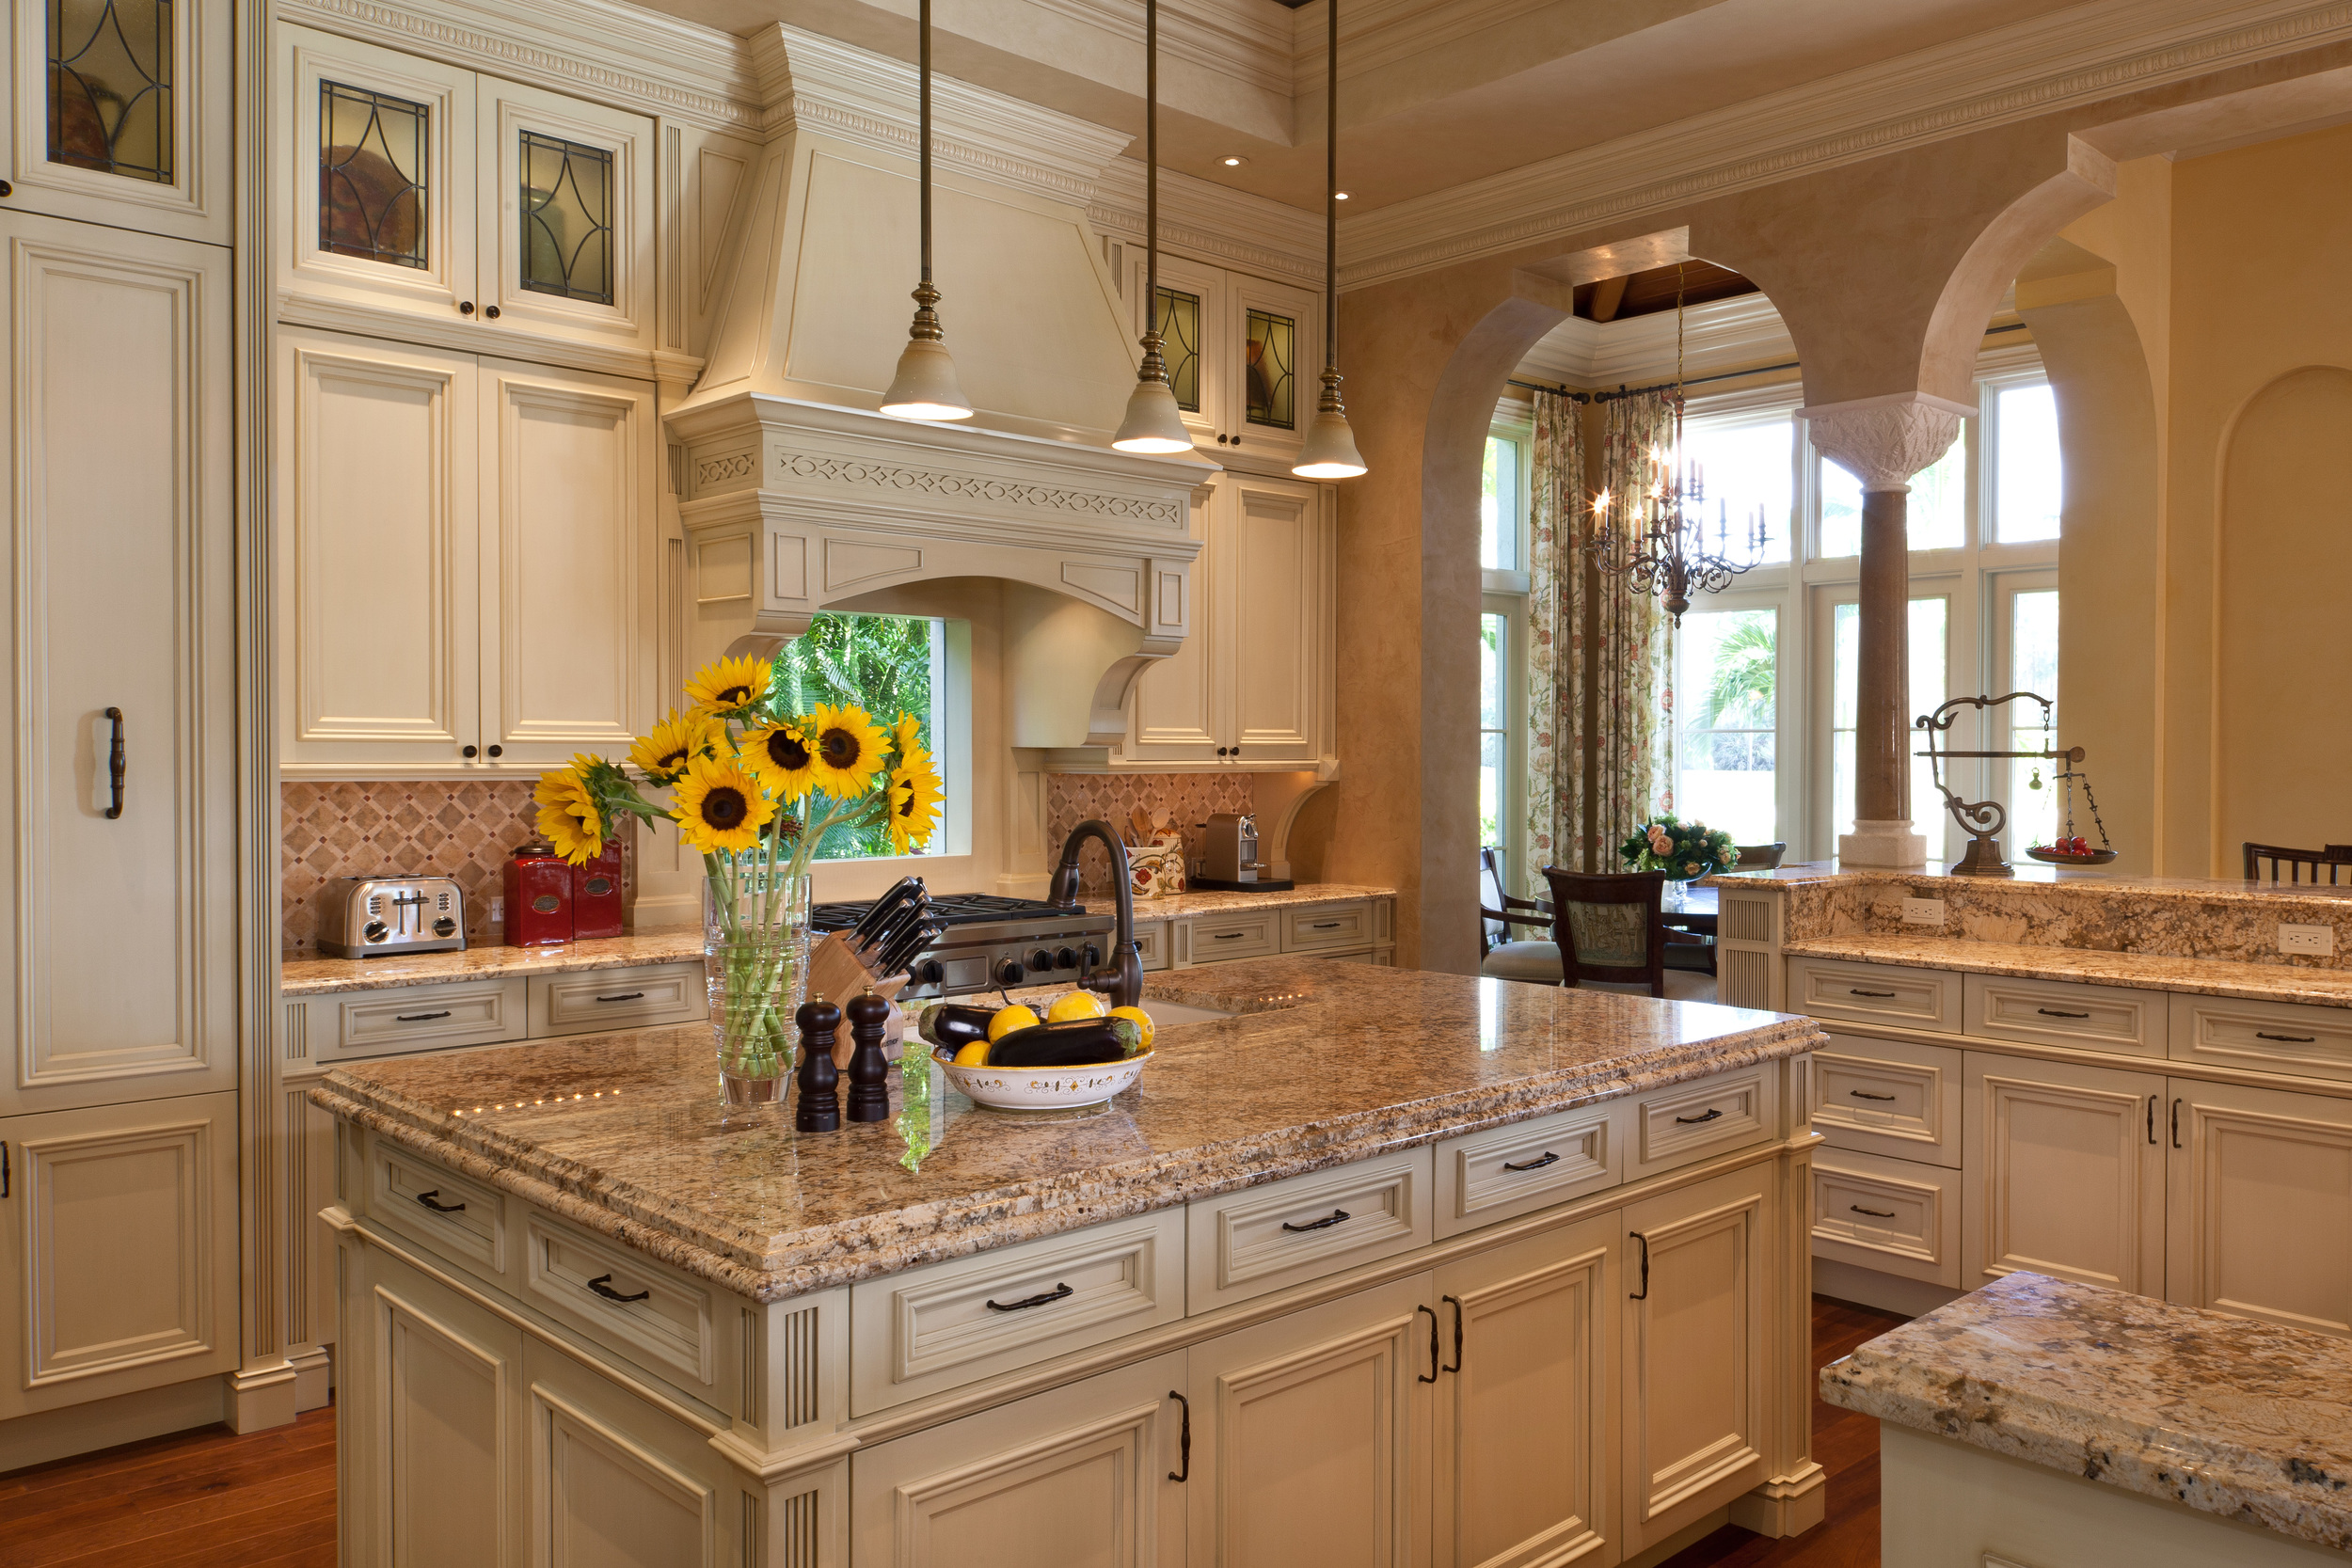 This 400 sq. ft. kitchen is a masterpiece of detailing and collaboration with the cabinet maker. Every inch of the cabinetry was custom designed for function and to integrate with the interior architectural elements. Like the large colonnades elsewhere, the small columns have a Moorish flavour. The proto-Grecian column capital reproduces one seen on the owners' trip to Turkey. Pale painted finishes and granite reflect the glorious light that floods this Canadian couple's Florida winter home.